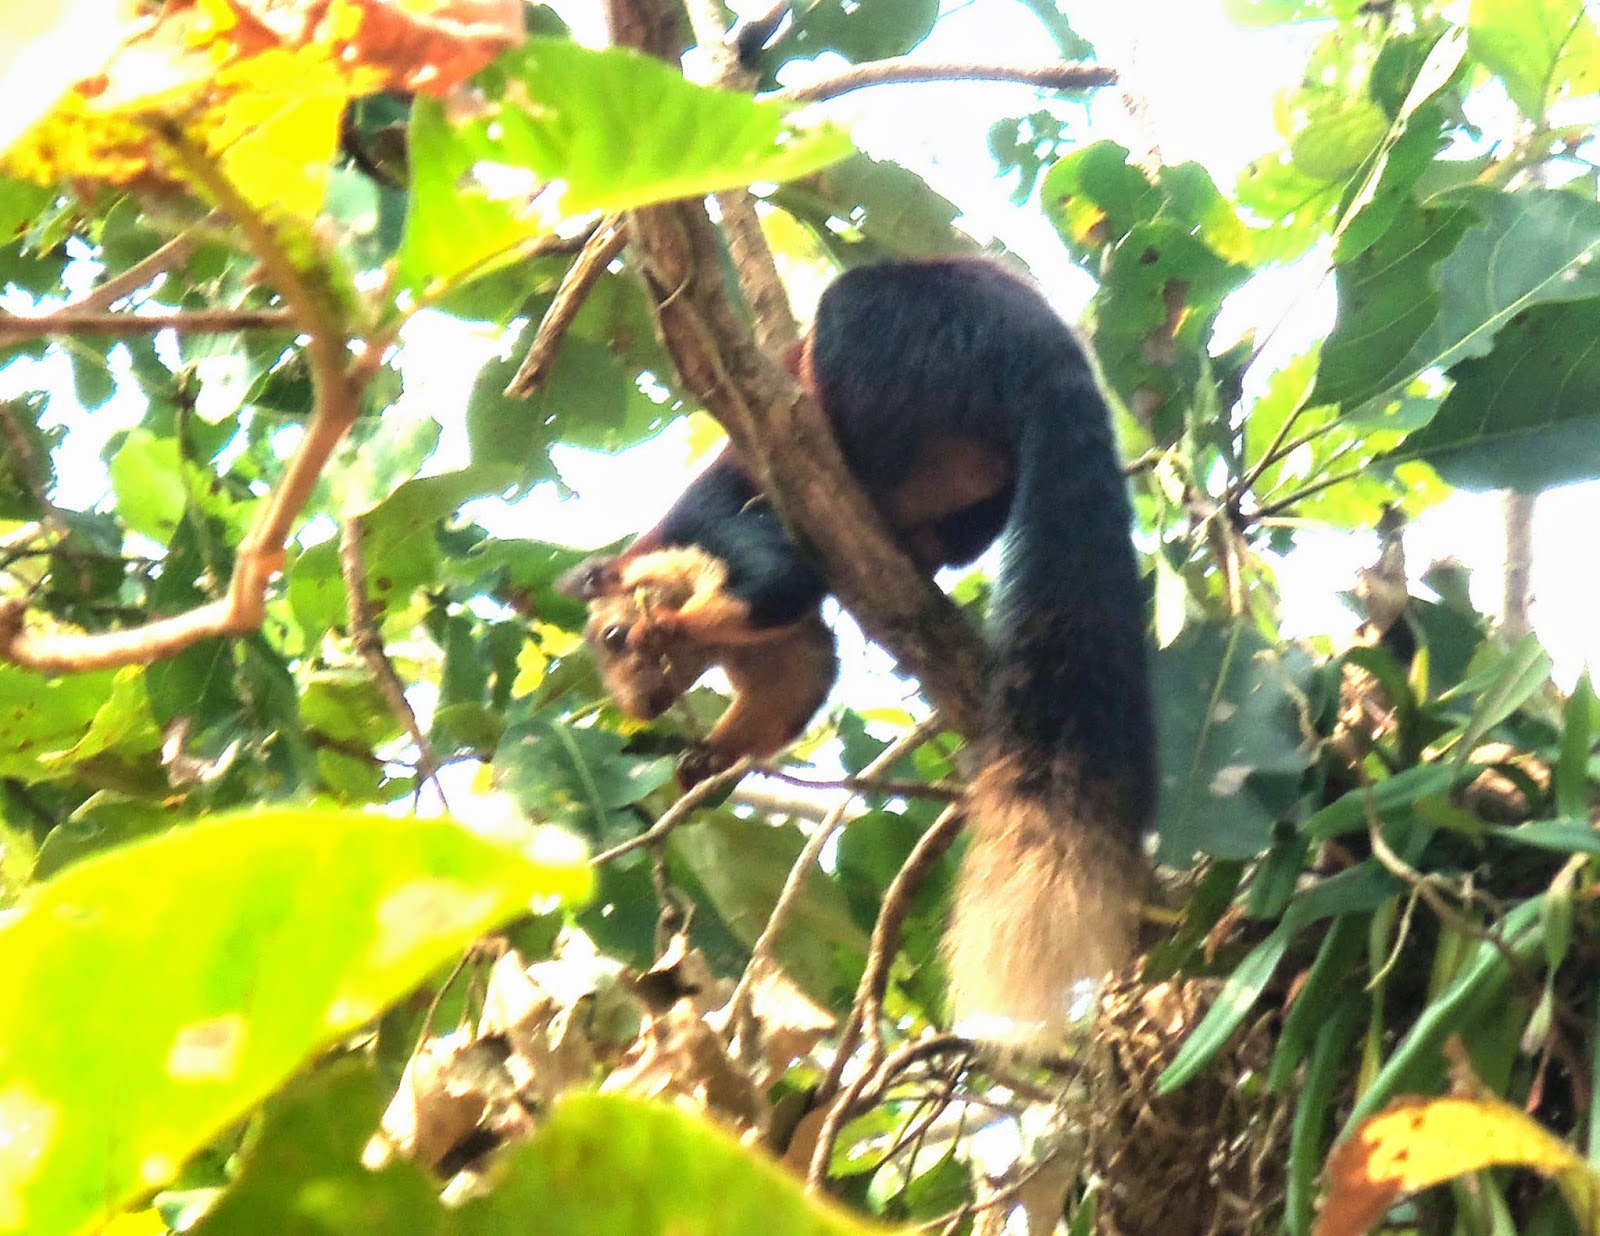 The giant squirrel that grabbed our attention